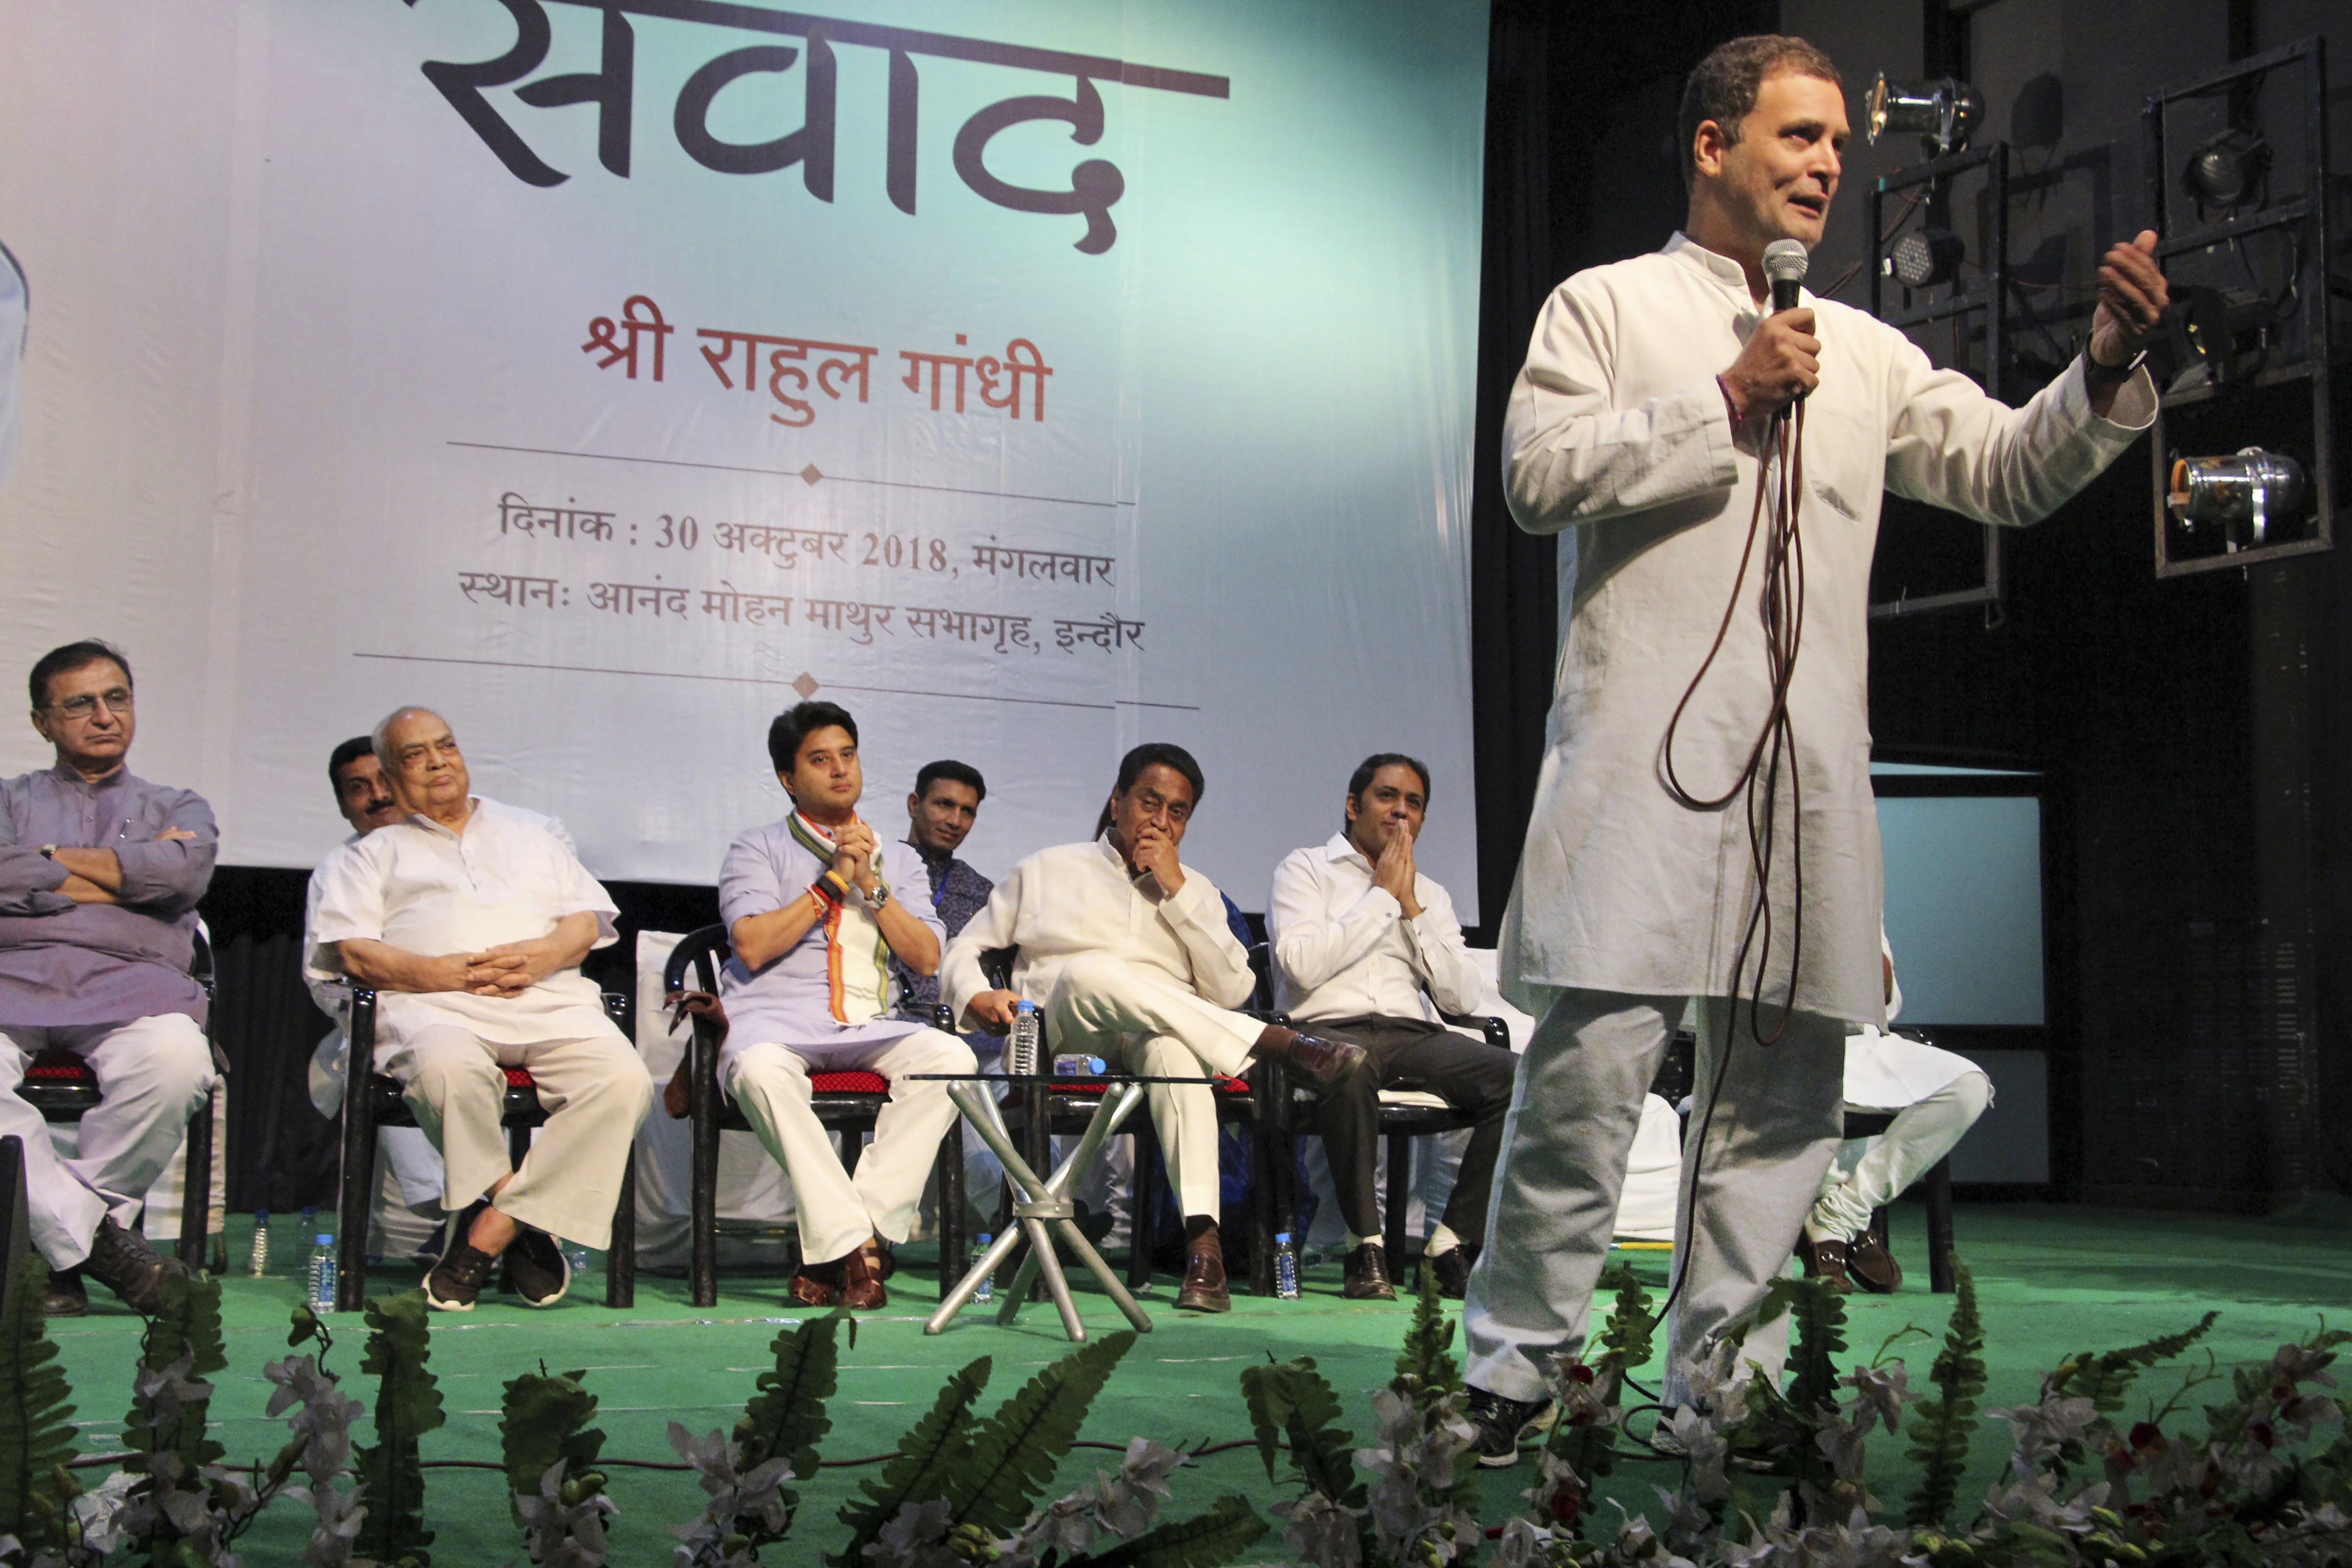 Congress President Rahul Gandhi addresses a gathering of lawyers, businessmen and others, in Indore - PTI